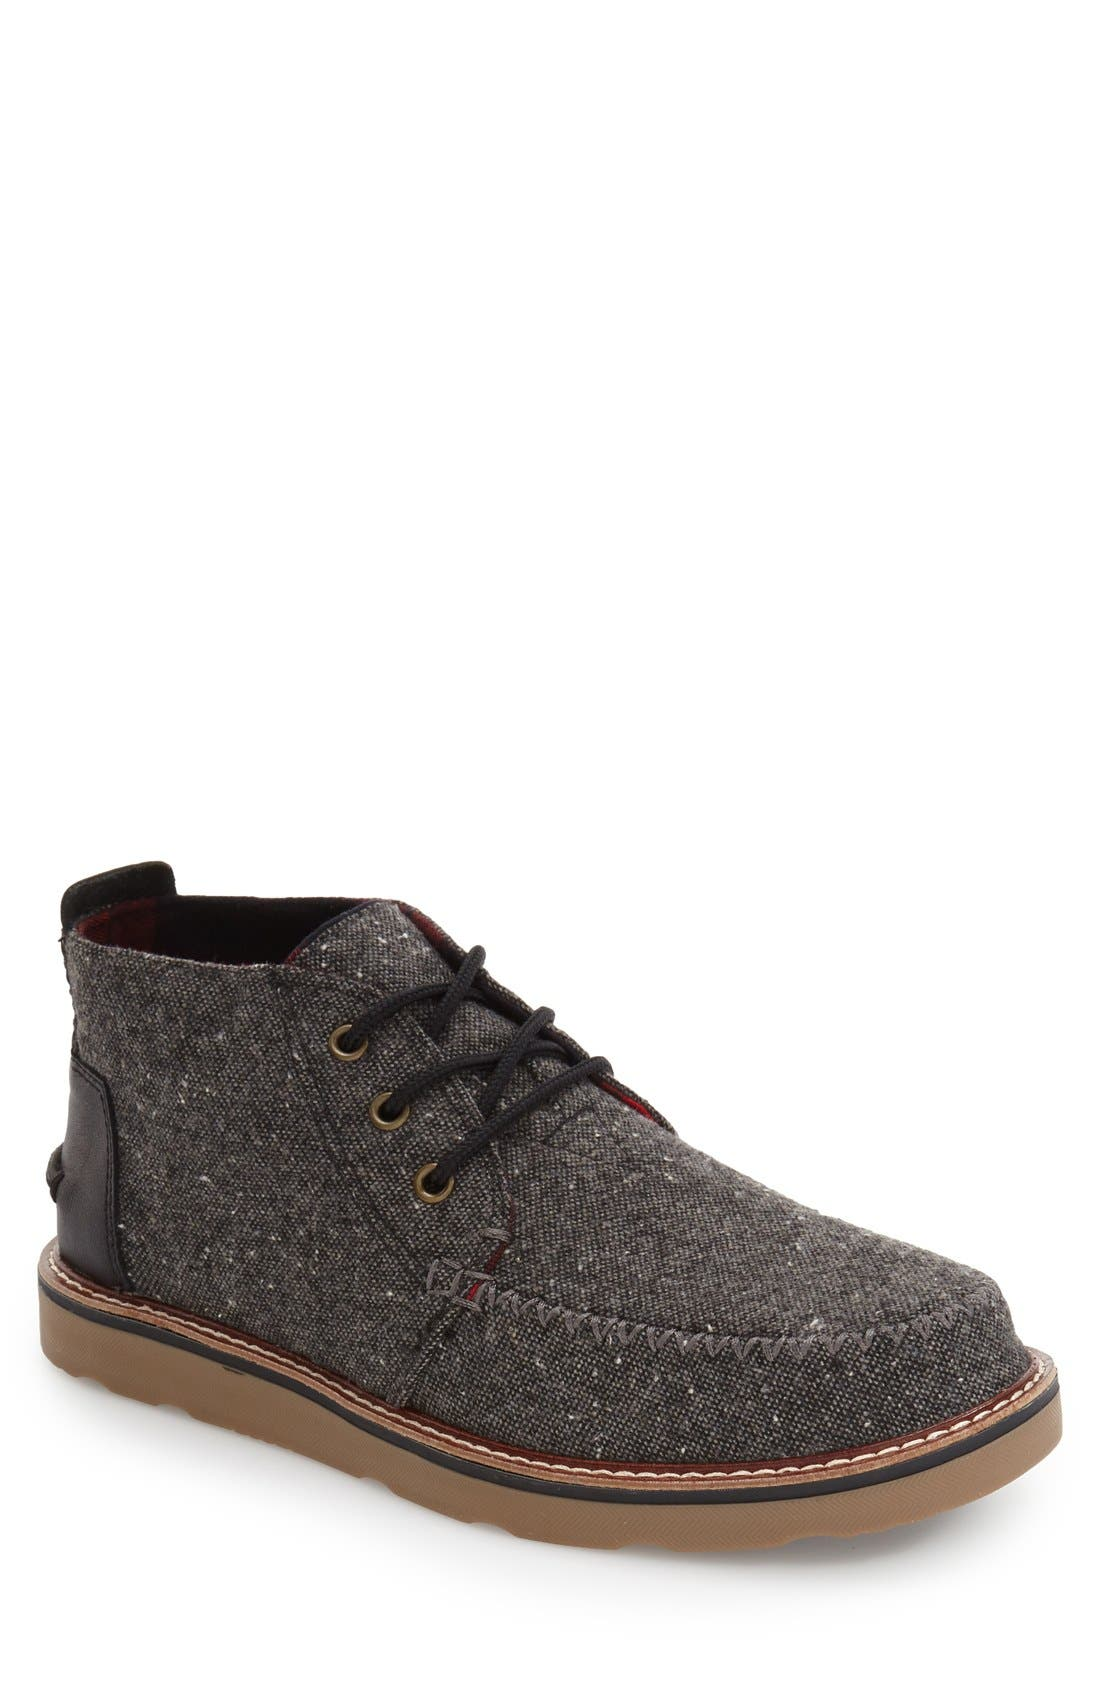 Chukka Boot,                         Main,                         color, 020